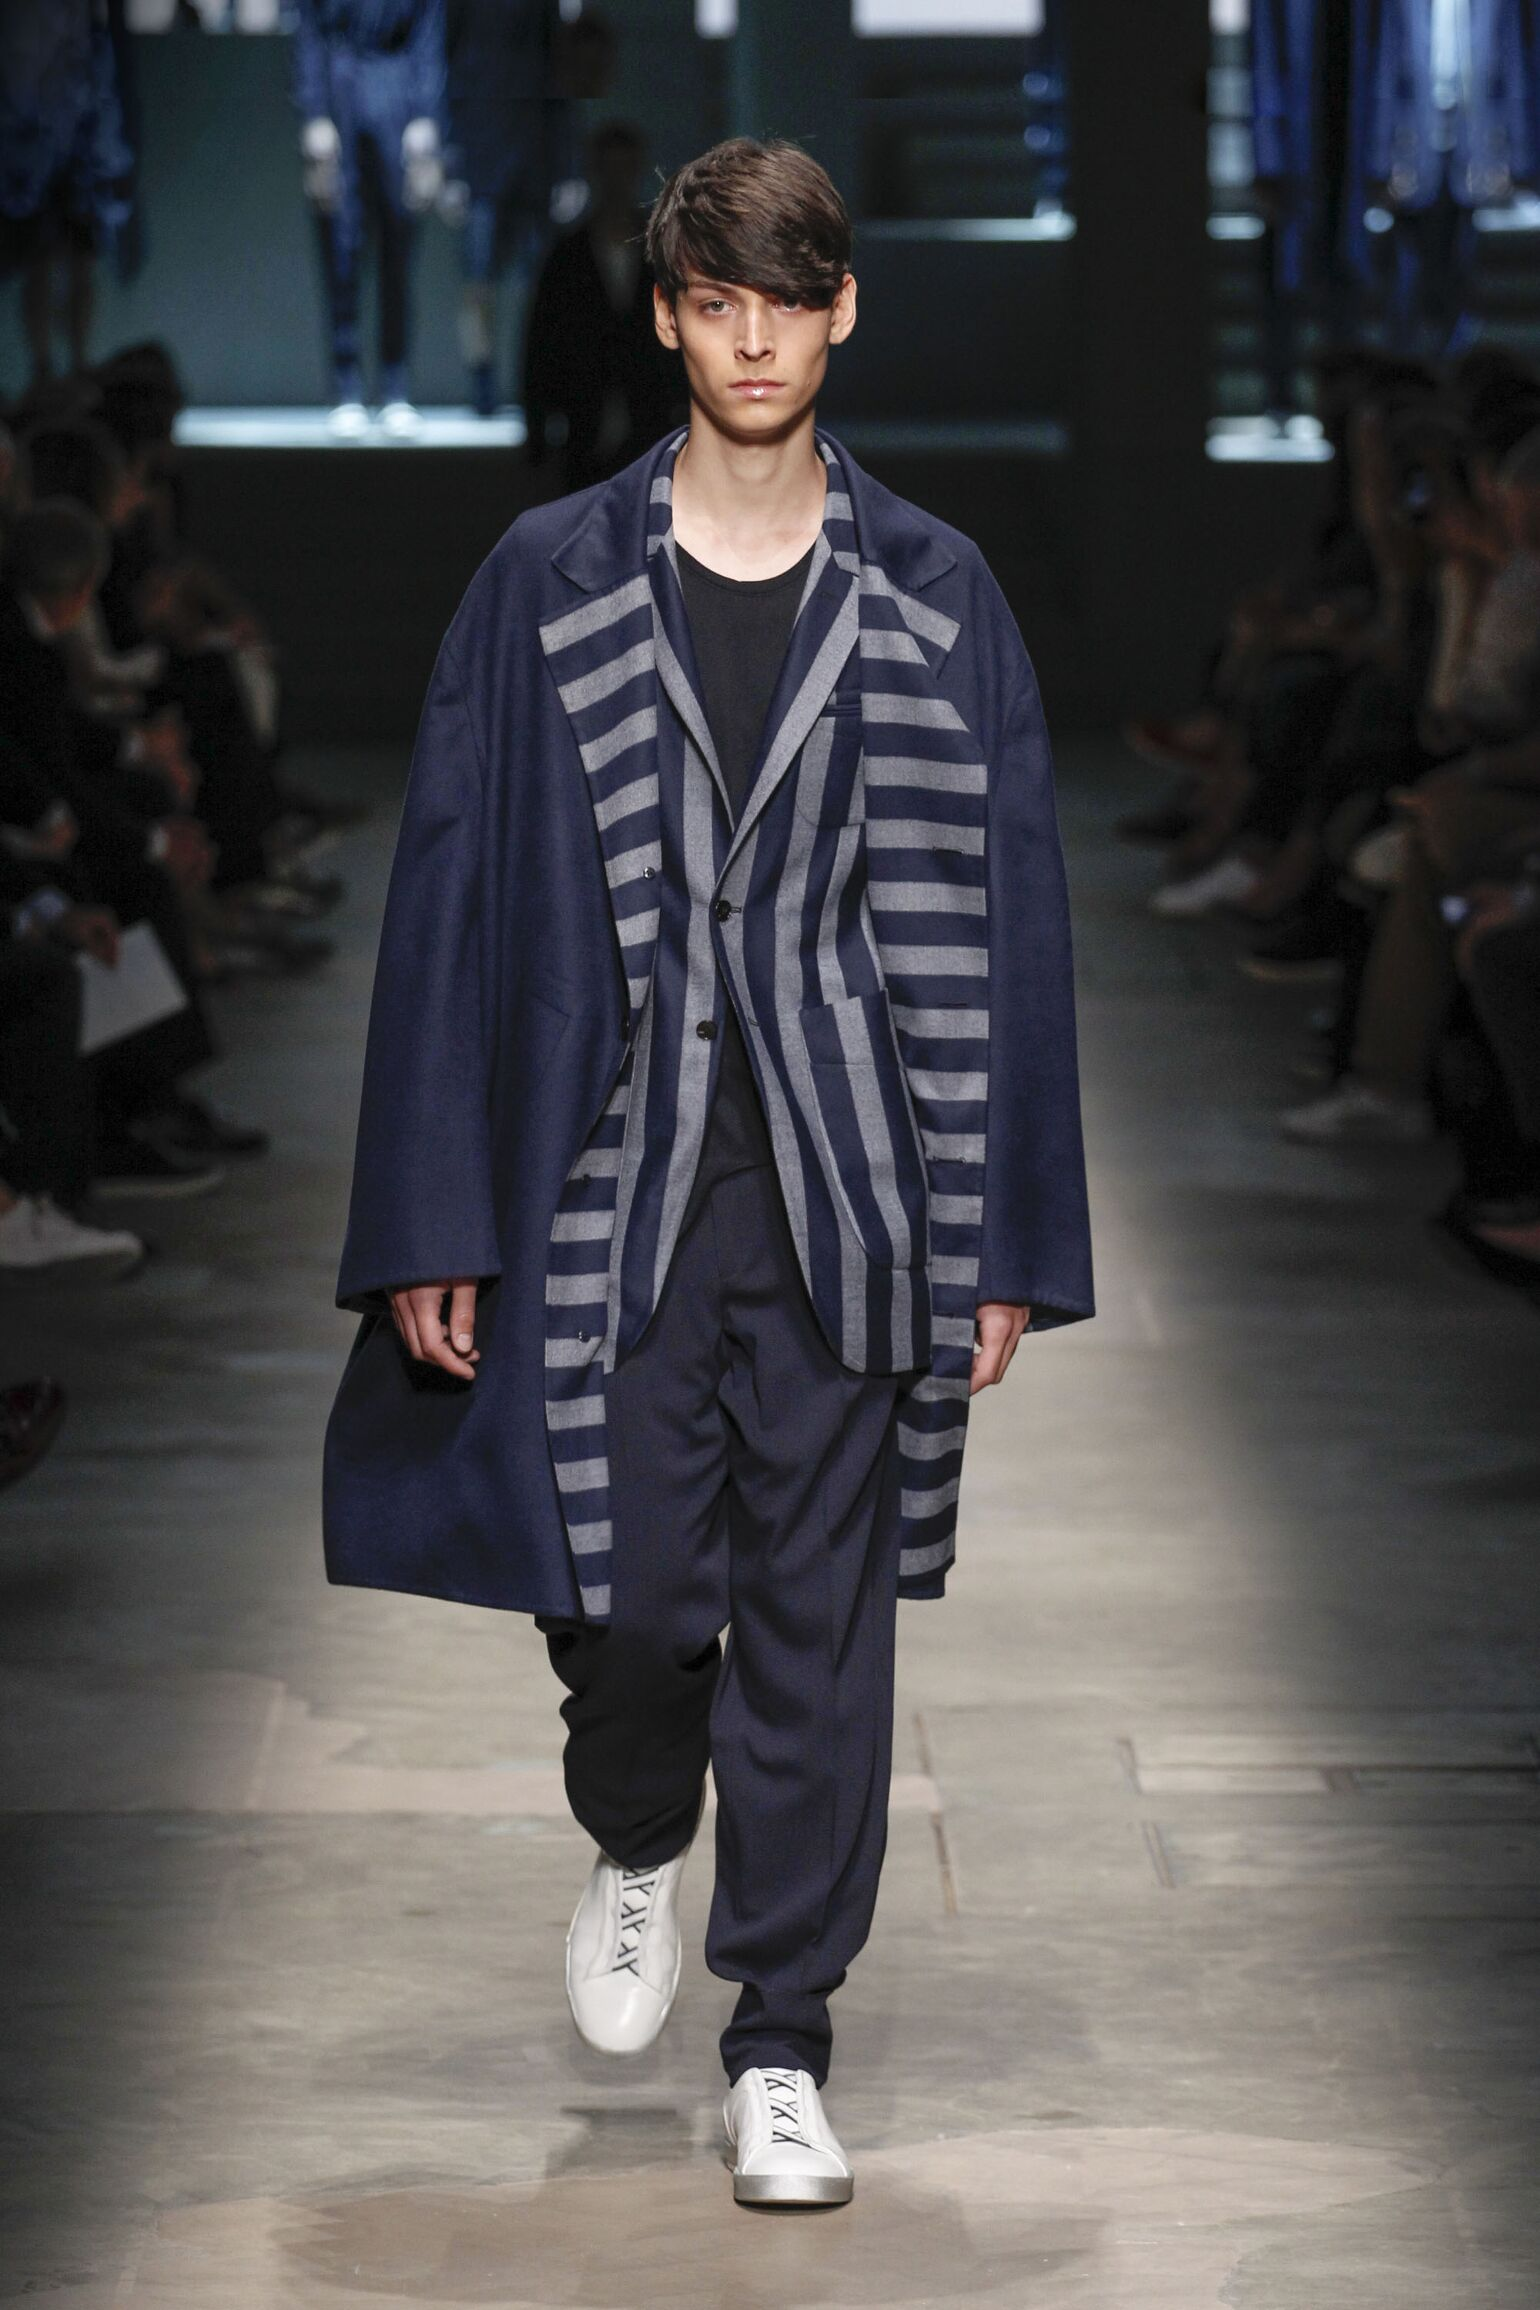 Spring Summer 2015 Fashion Model Ermenegildo Zegna Couture